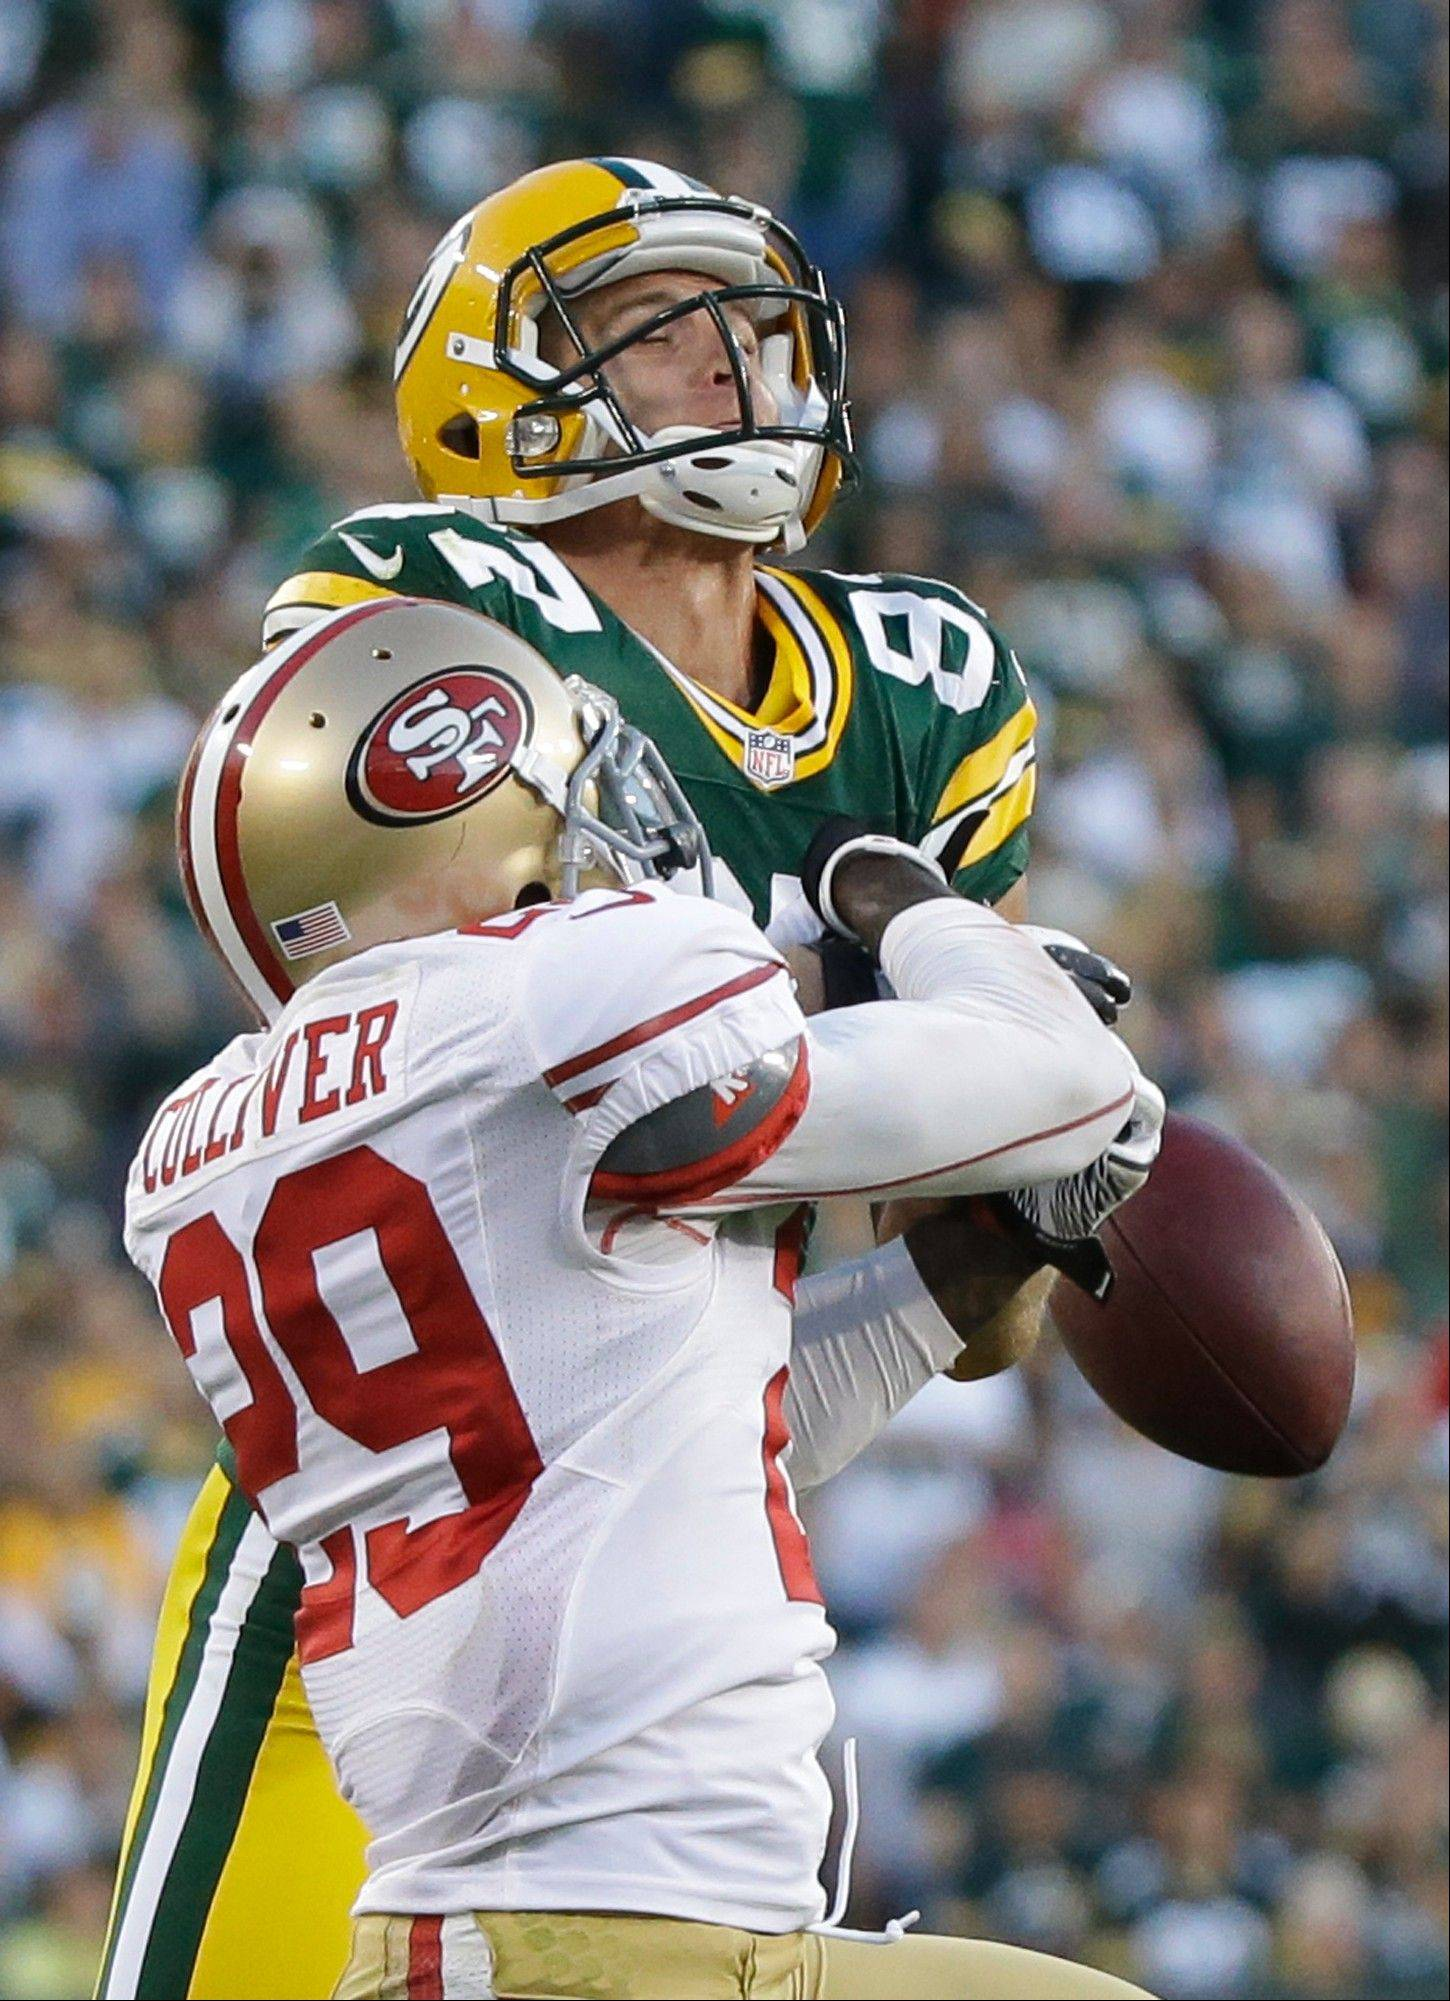 The San Francisco 49ers hope to do what they did to open the season when they defeated the Packers 30-22 in Green Bay. The two teams meet Saturday night in San Francisco for an NFC divisional playoff game.